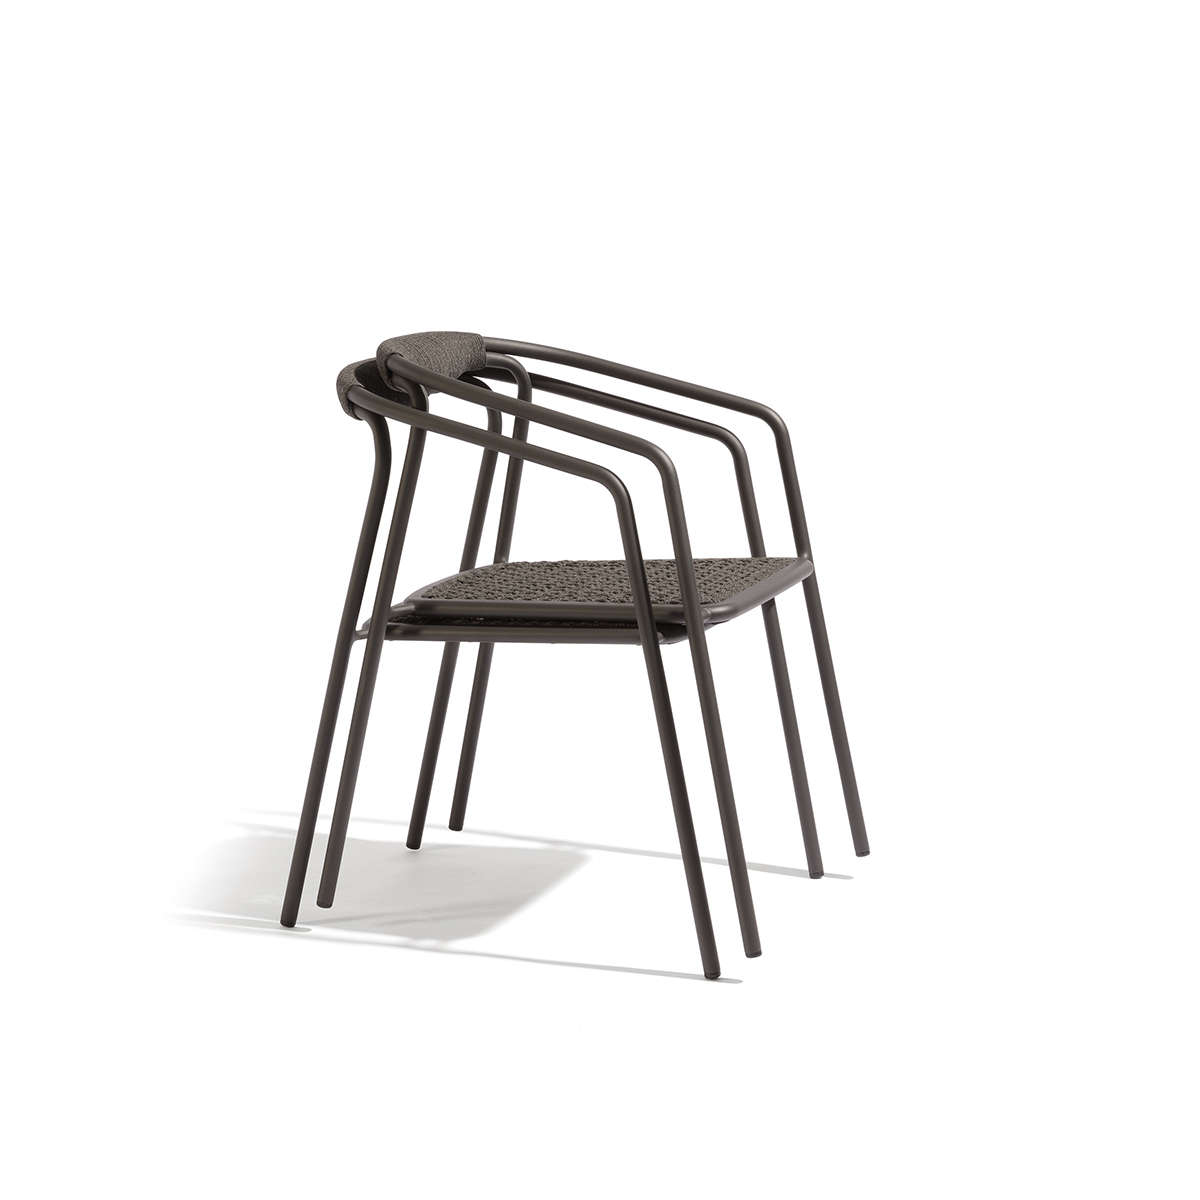 Manutti Duo Stacking Chair Cut Out Black 2